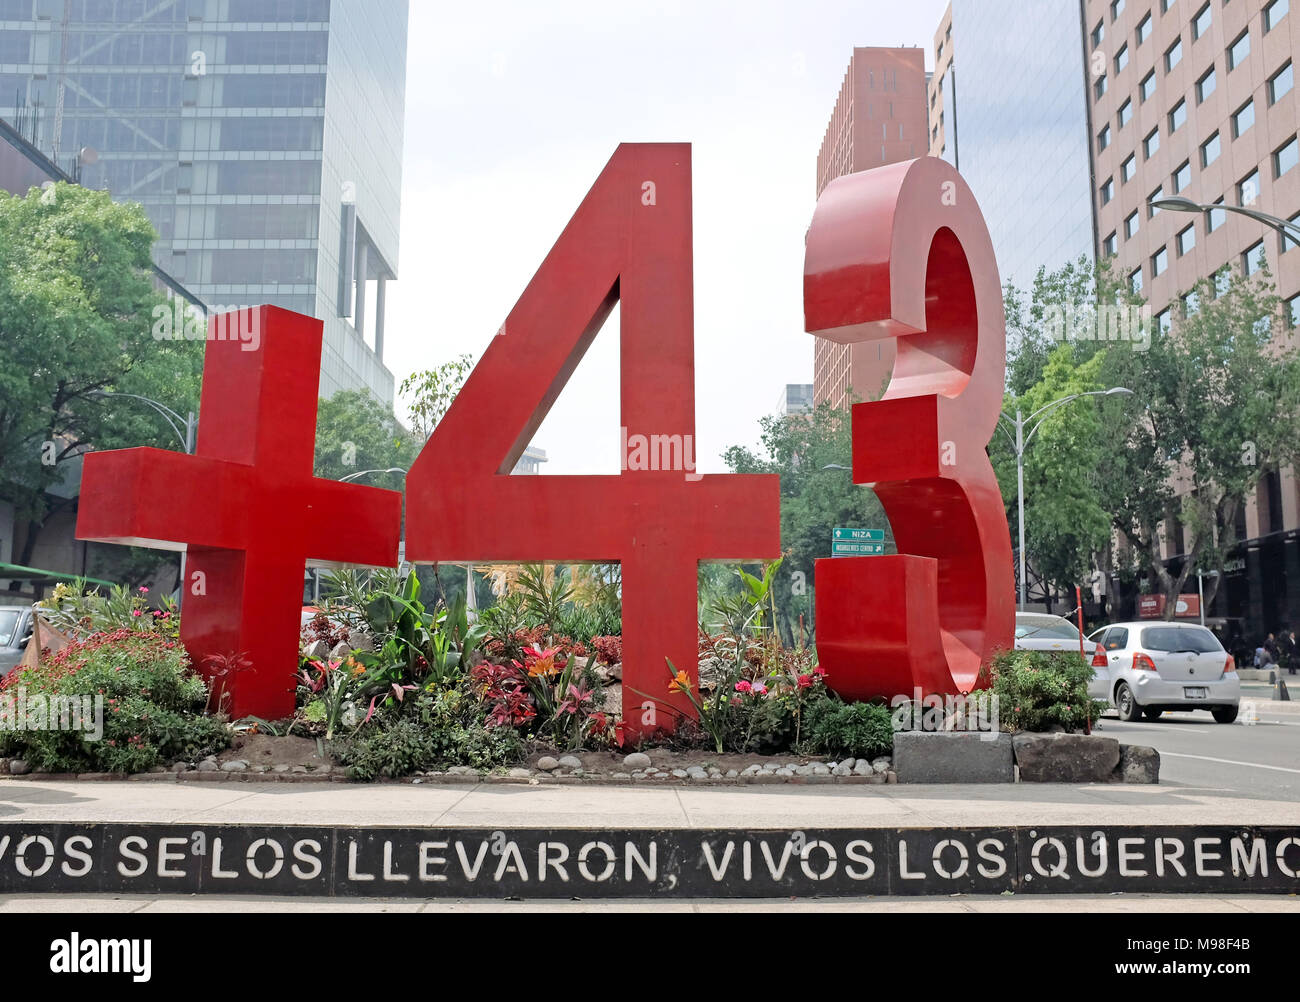 A large roadside monument titled 'Anti-Monumento +43' reminds people of the 43 college students who disappeared in September 2014 in Mexico. - Stock Image